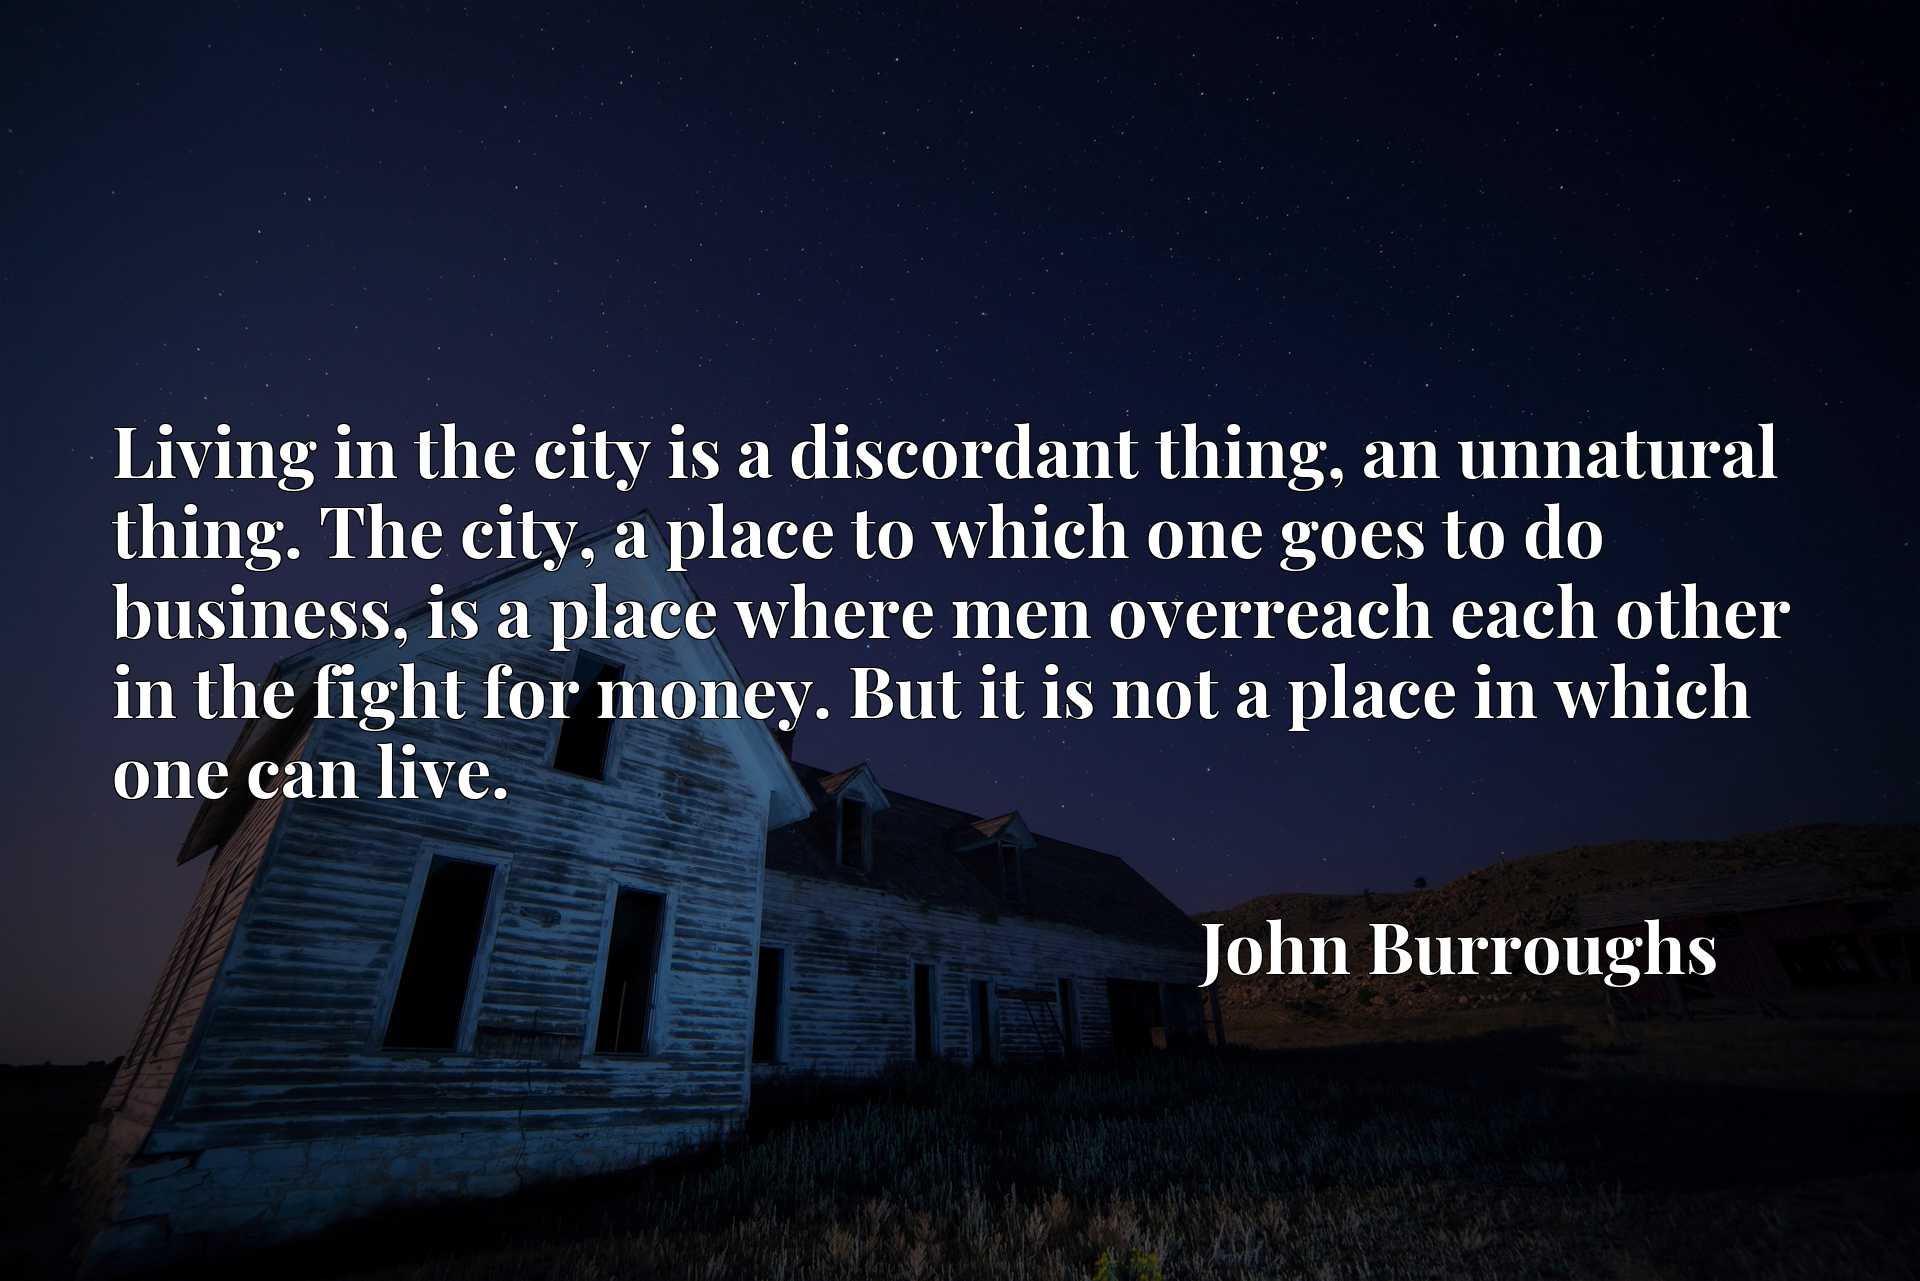 Living in the city is a discordant thing, an unnatural thing. The city, a place to which one goes to do business, is a place where men overreach each other in the fight for money. But it is not a place in which one can live.